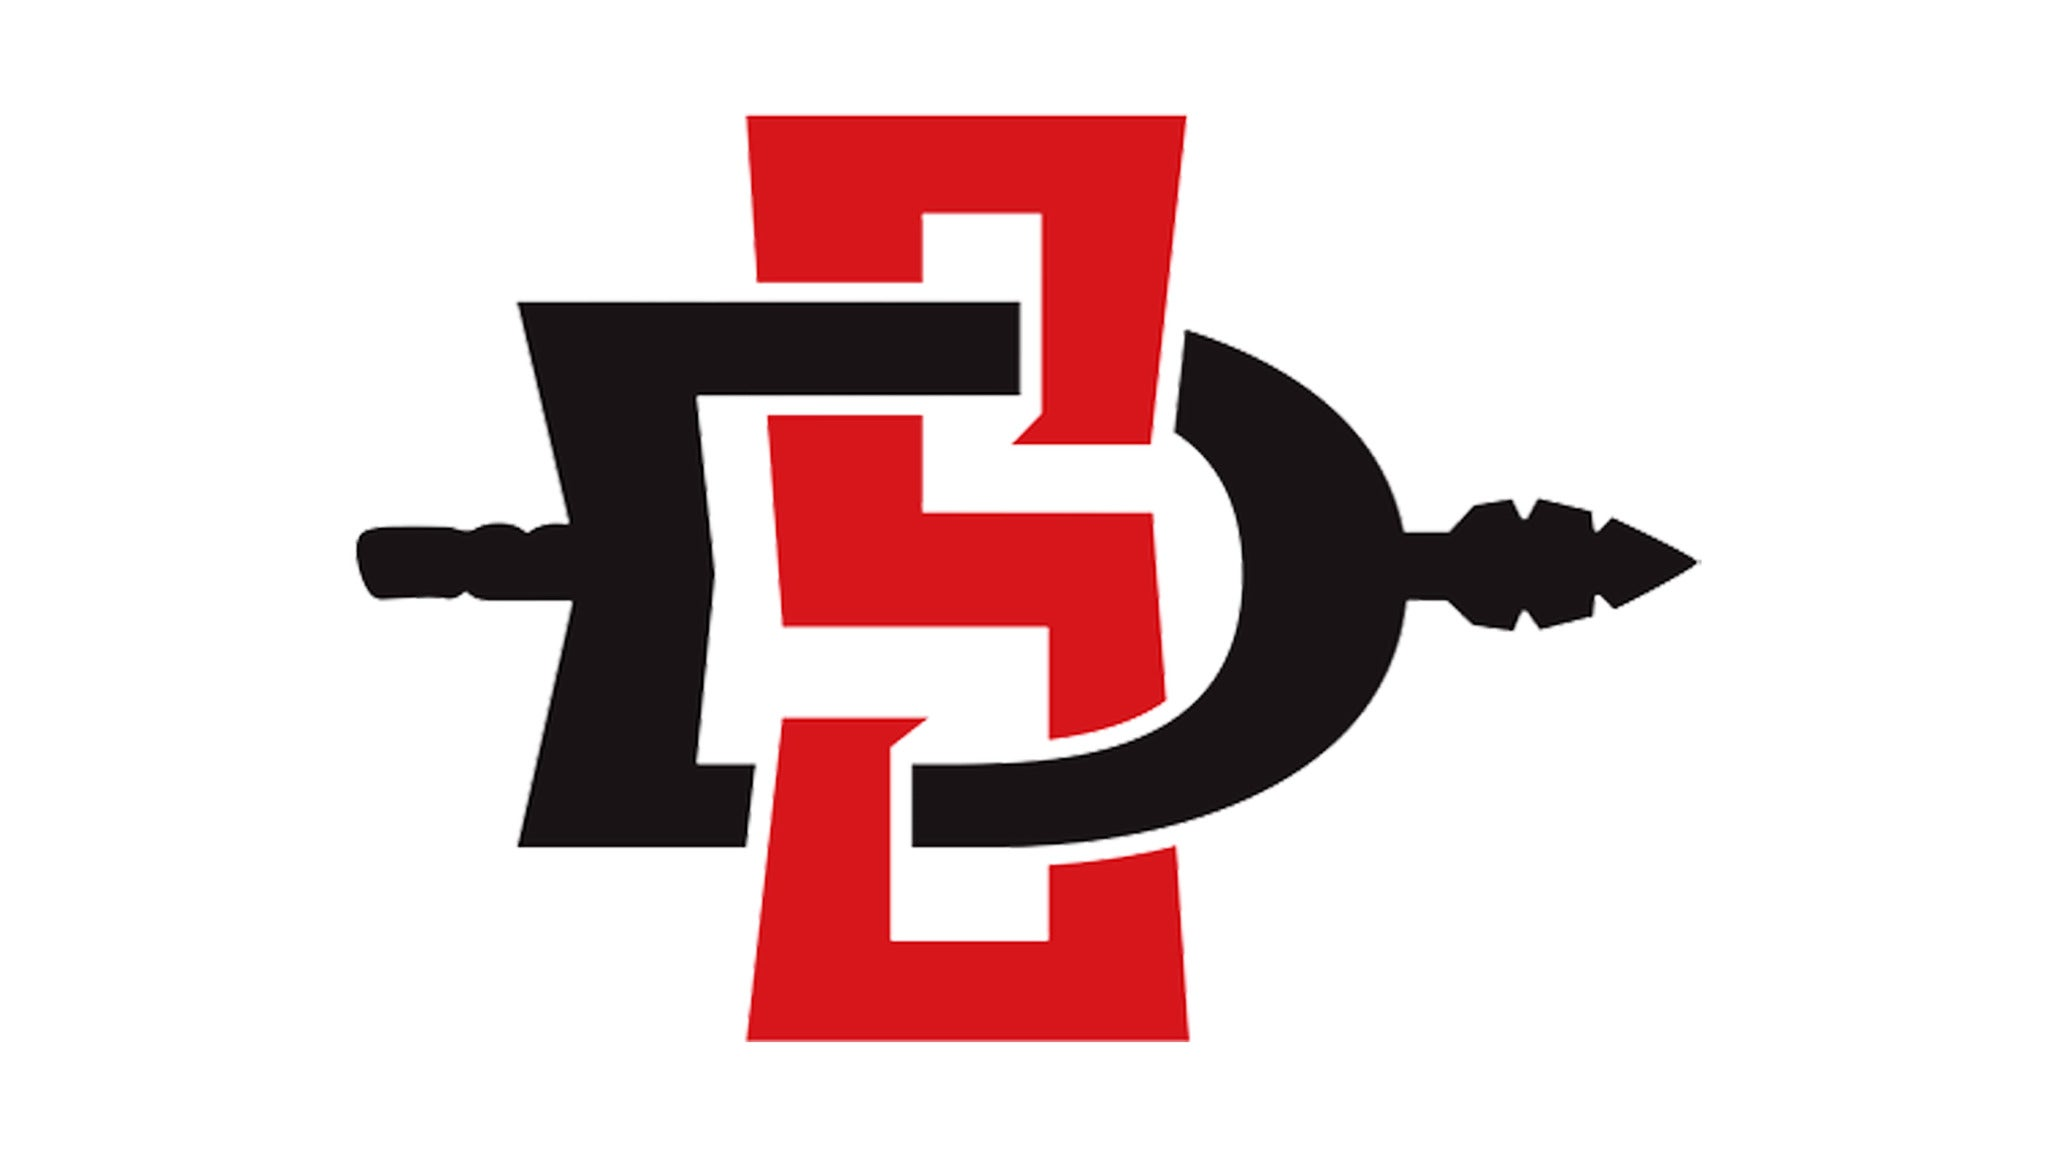 SDSU Aztec Football vs. BYU Cougars Football